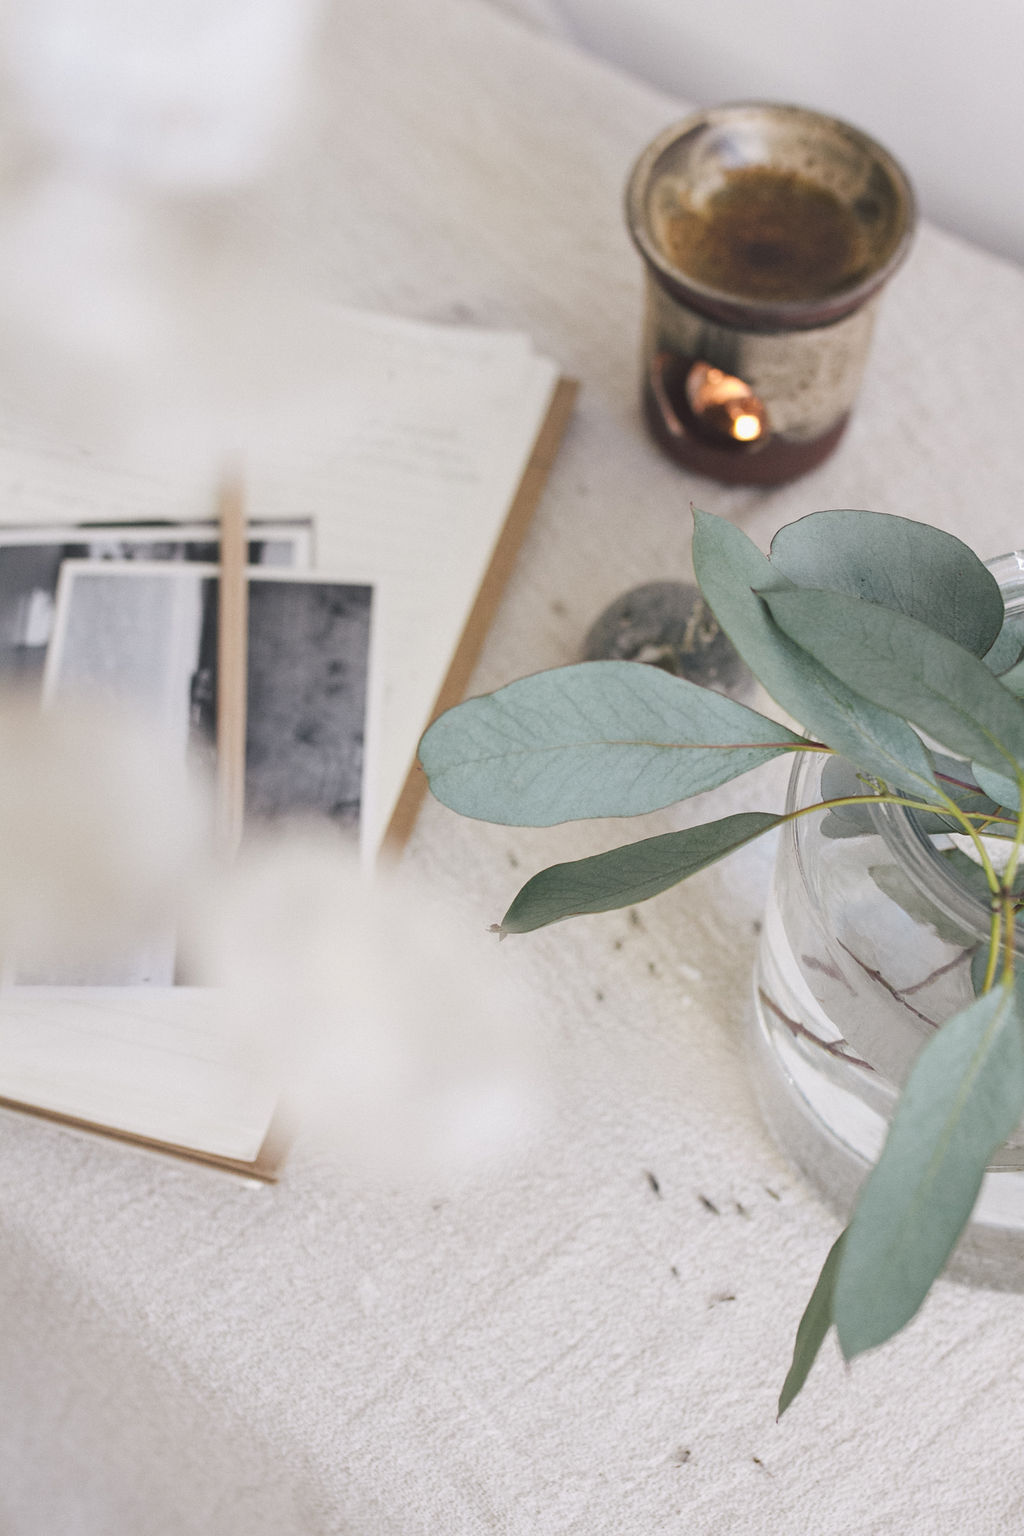 Calming photo of notebook, printed photos, candle, and eucalyptus leaves in a glass vase